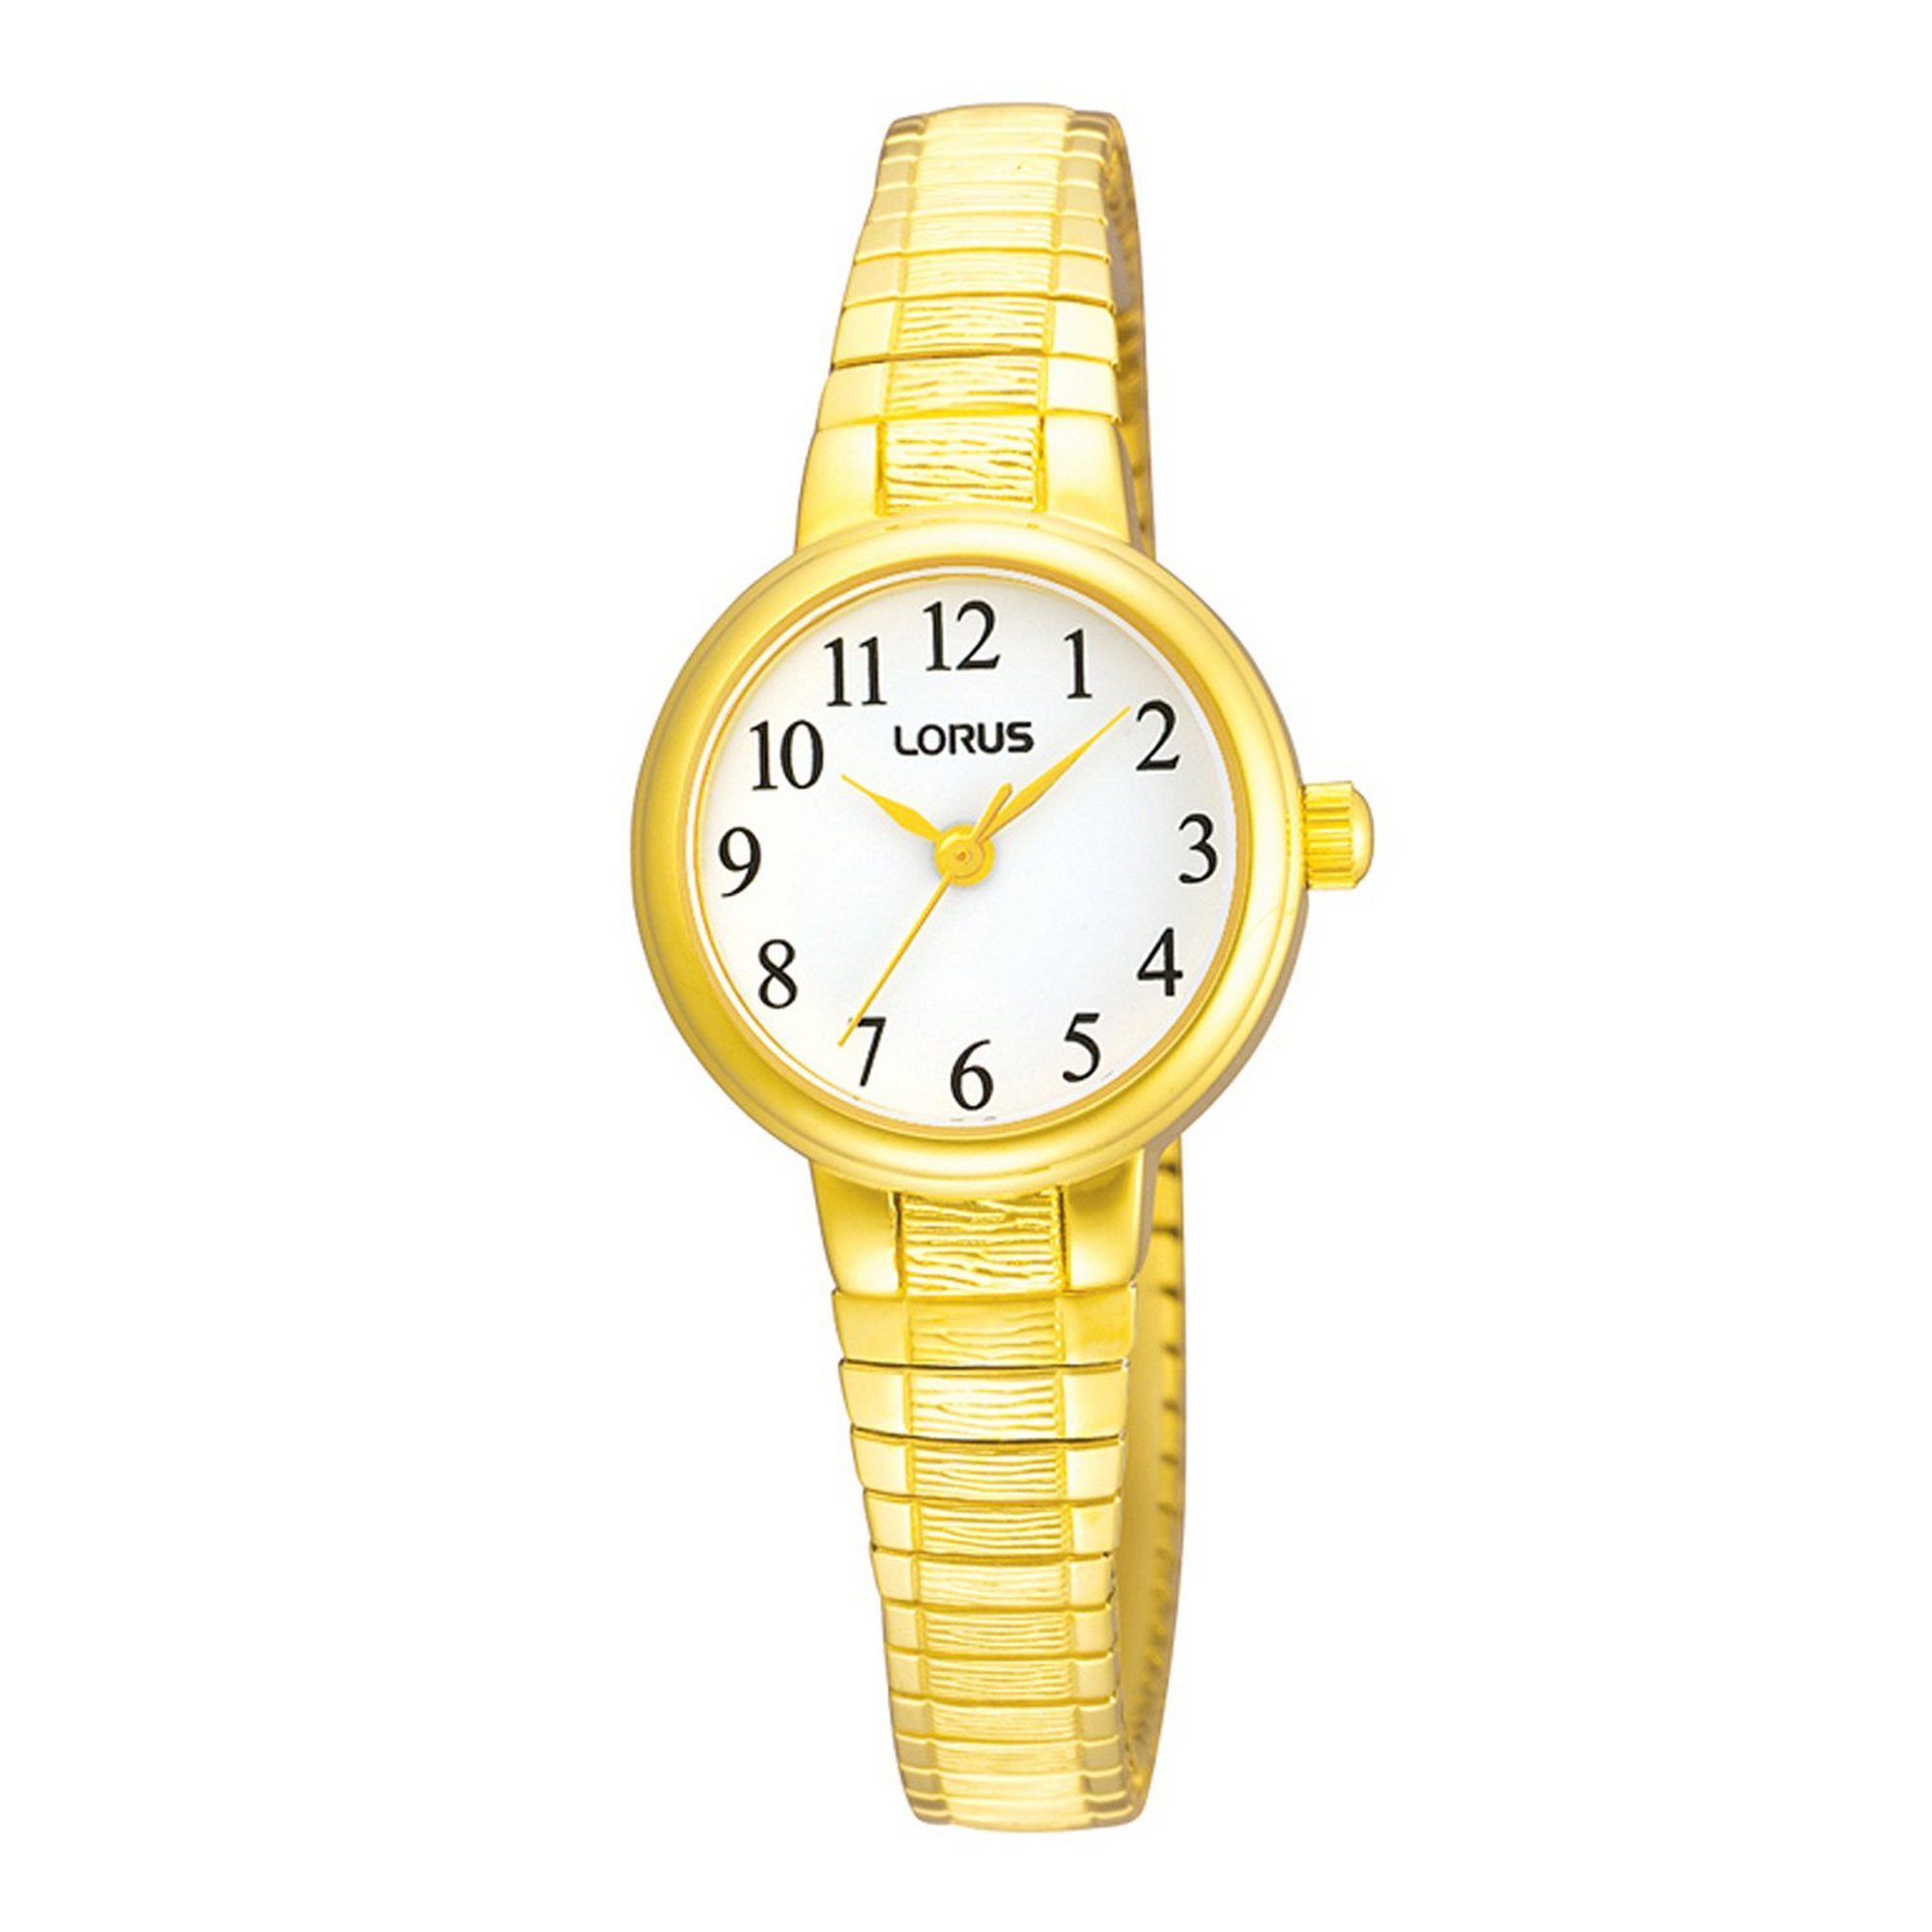 Image of Lorus Gold Plated Expanding Bracelet Watch with Circular Face